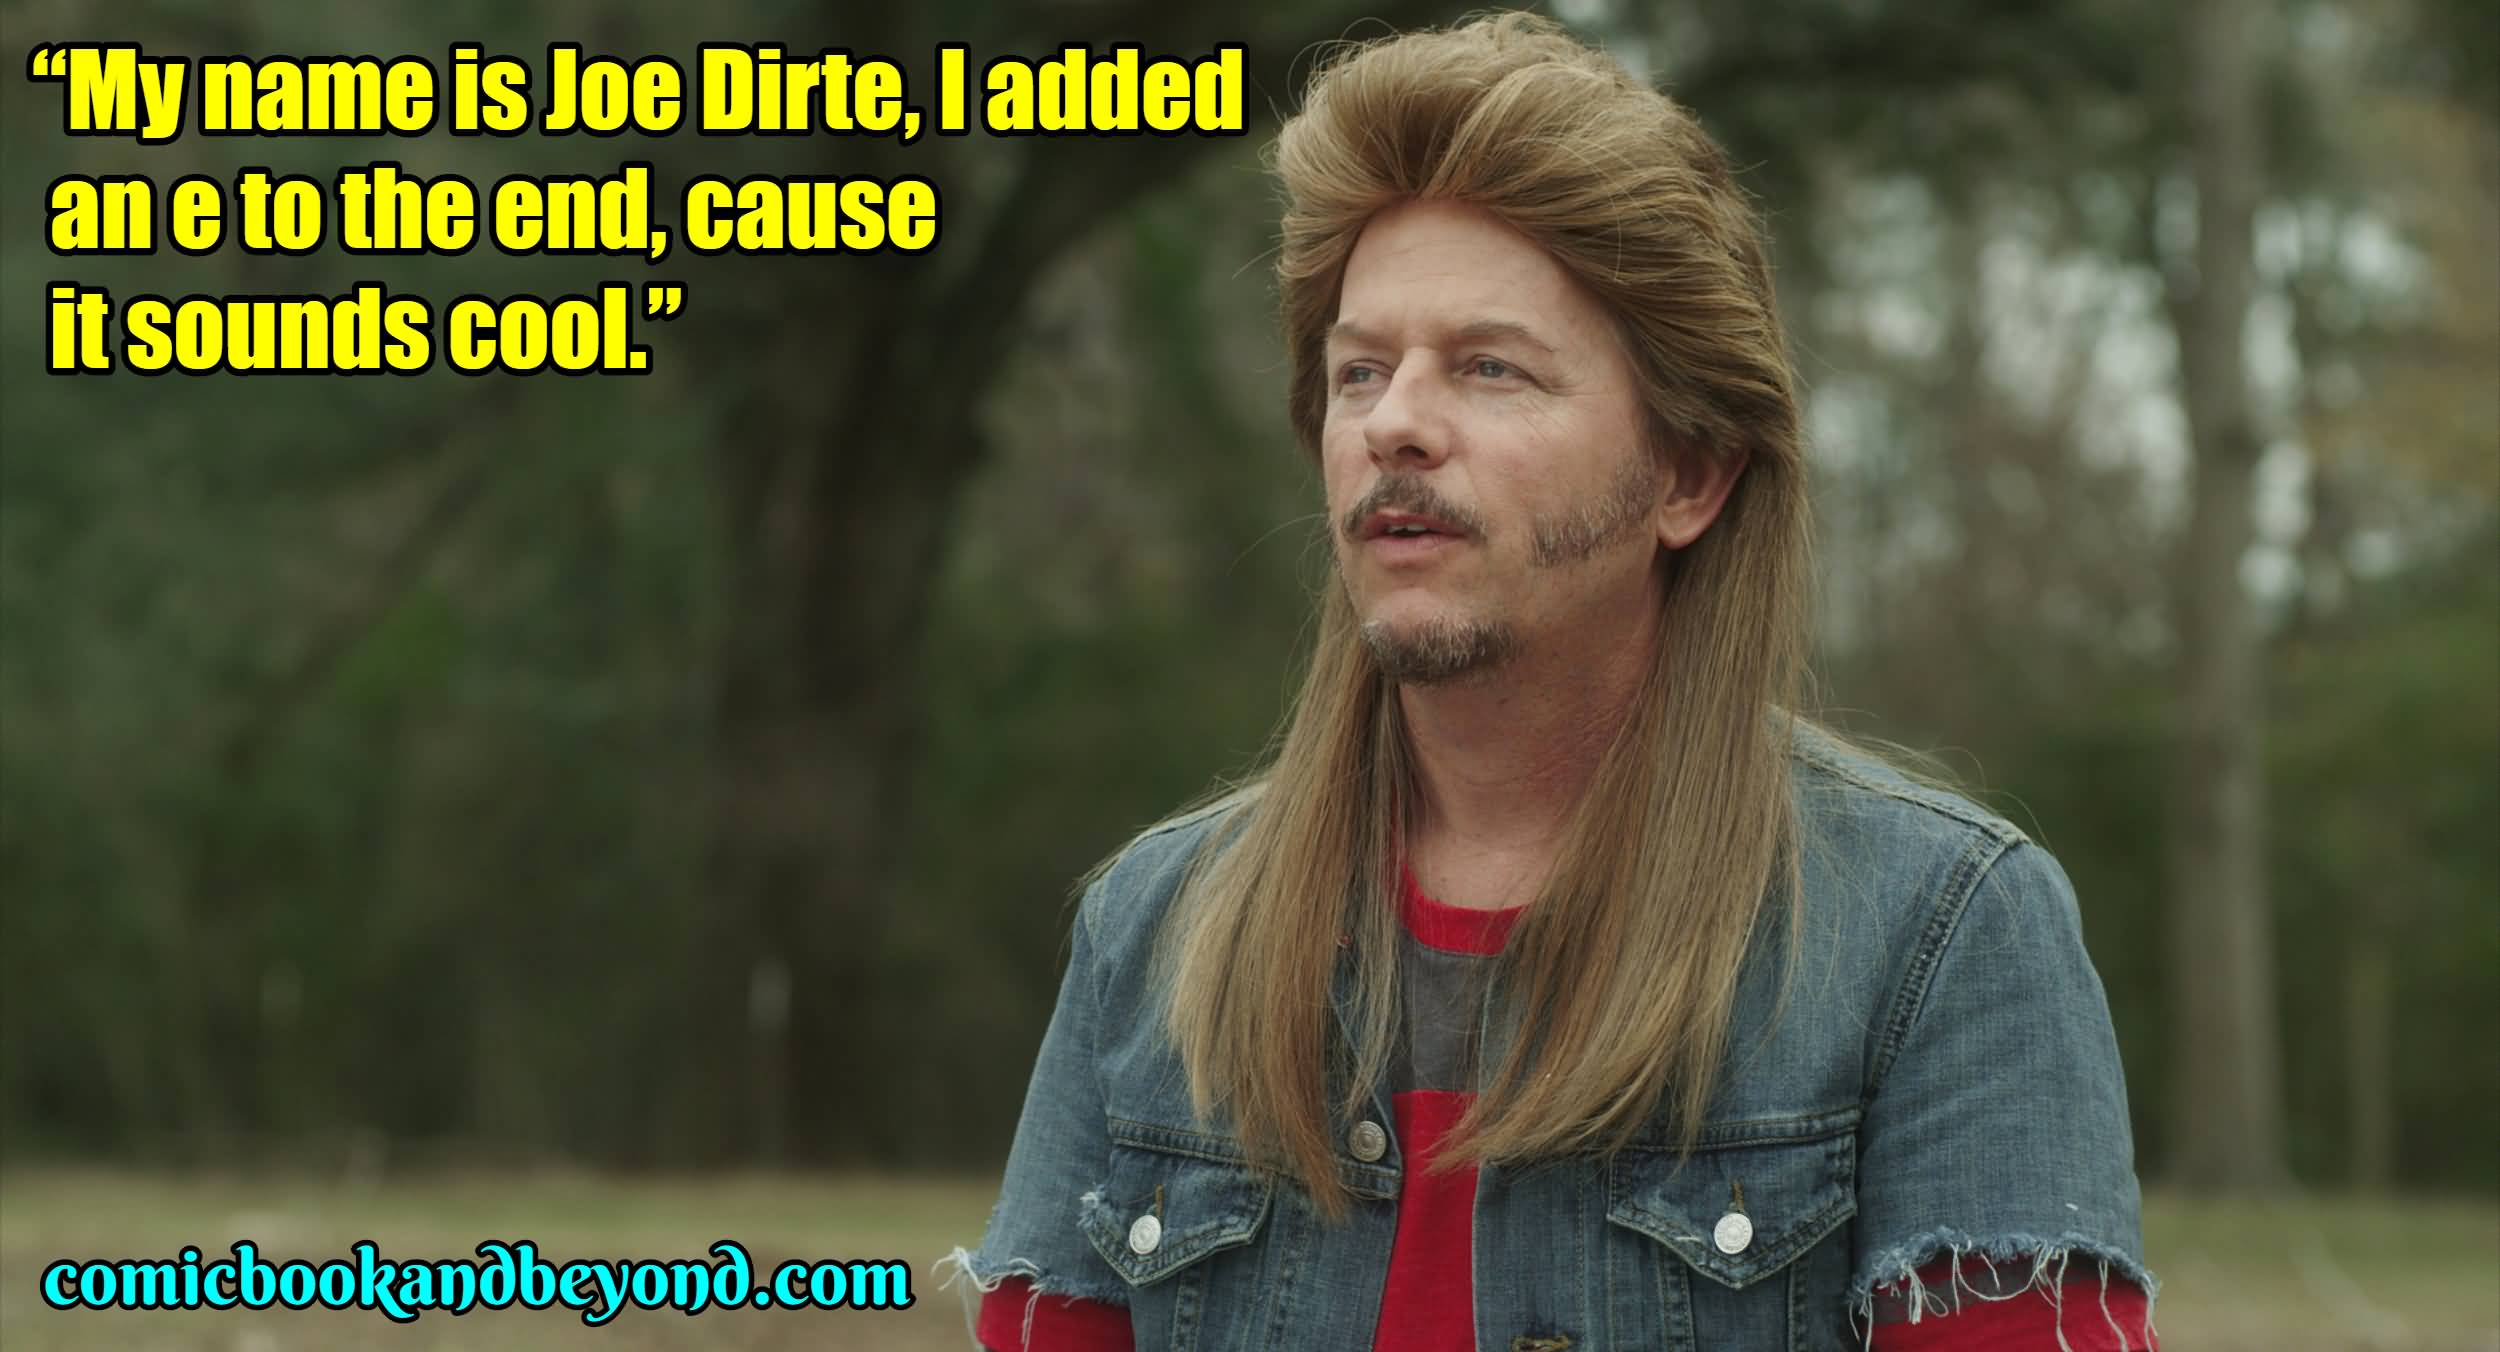 24 Joe Dirt Quotes Pictures And Photos Collection Picss Mine Beautiful loser. plus, see what she said about. 24 joe dirt quotes pictures and photos